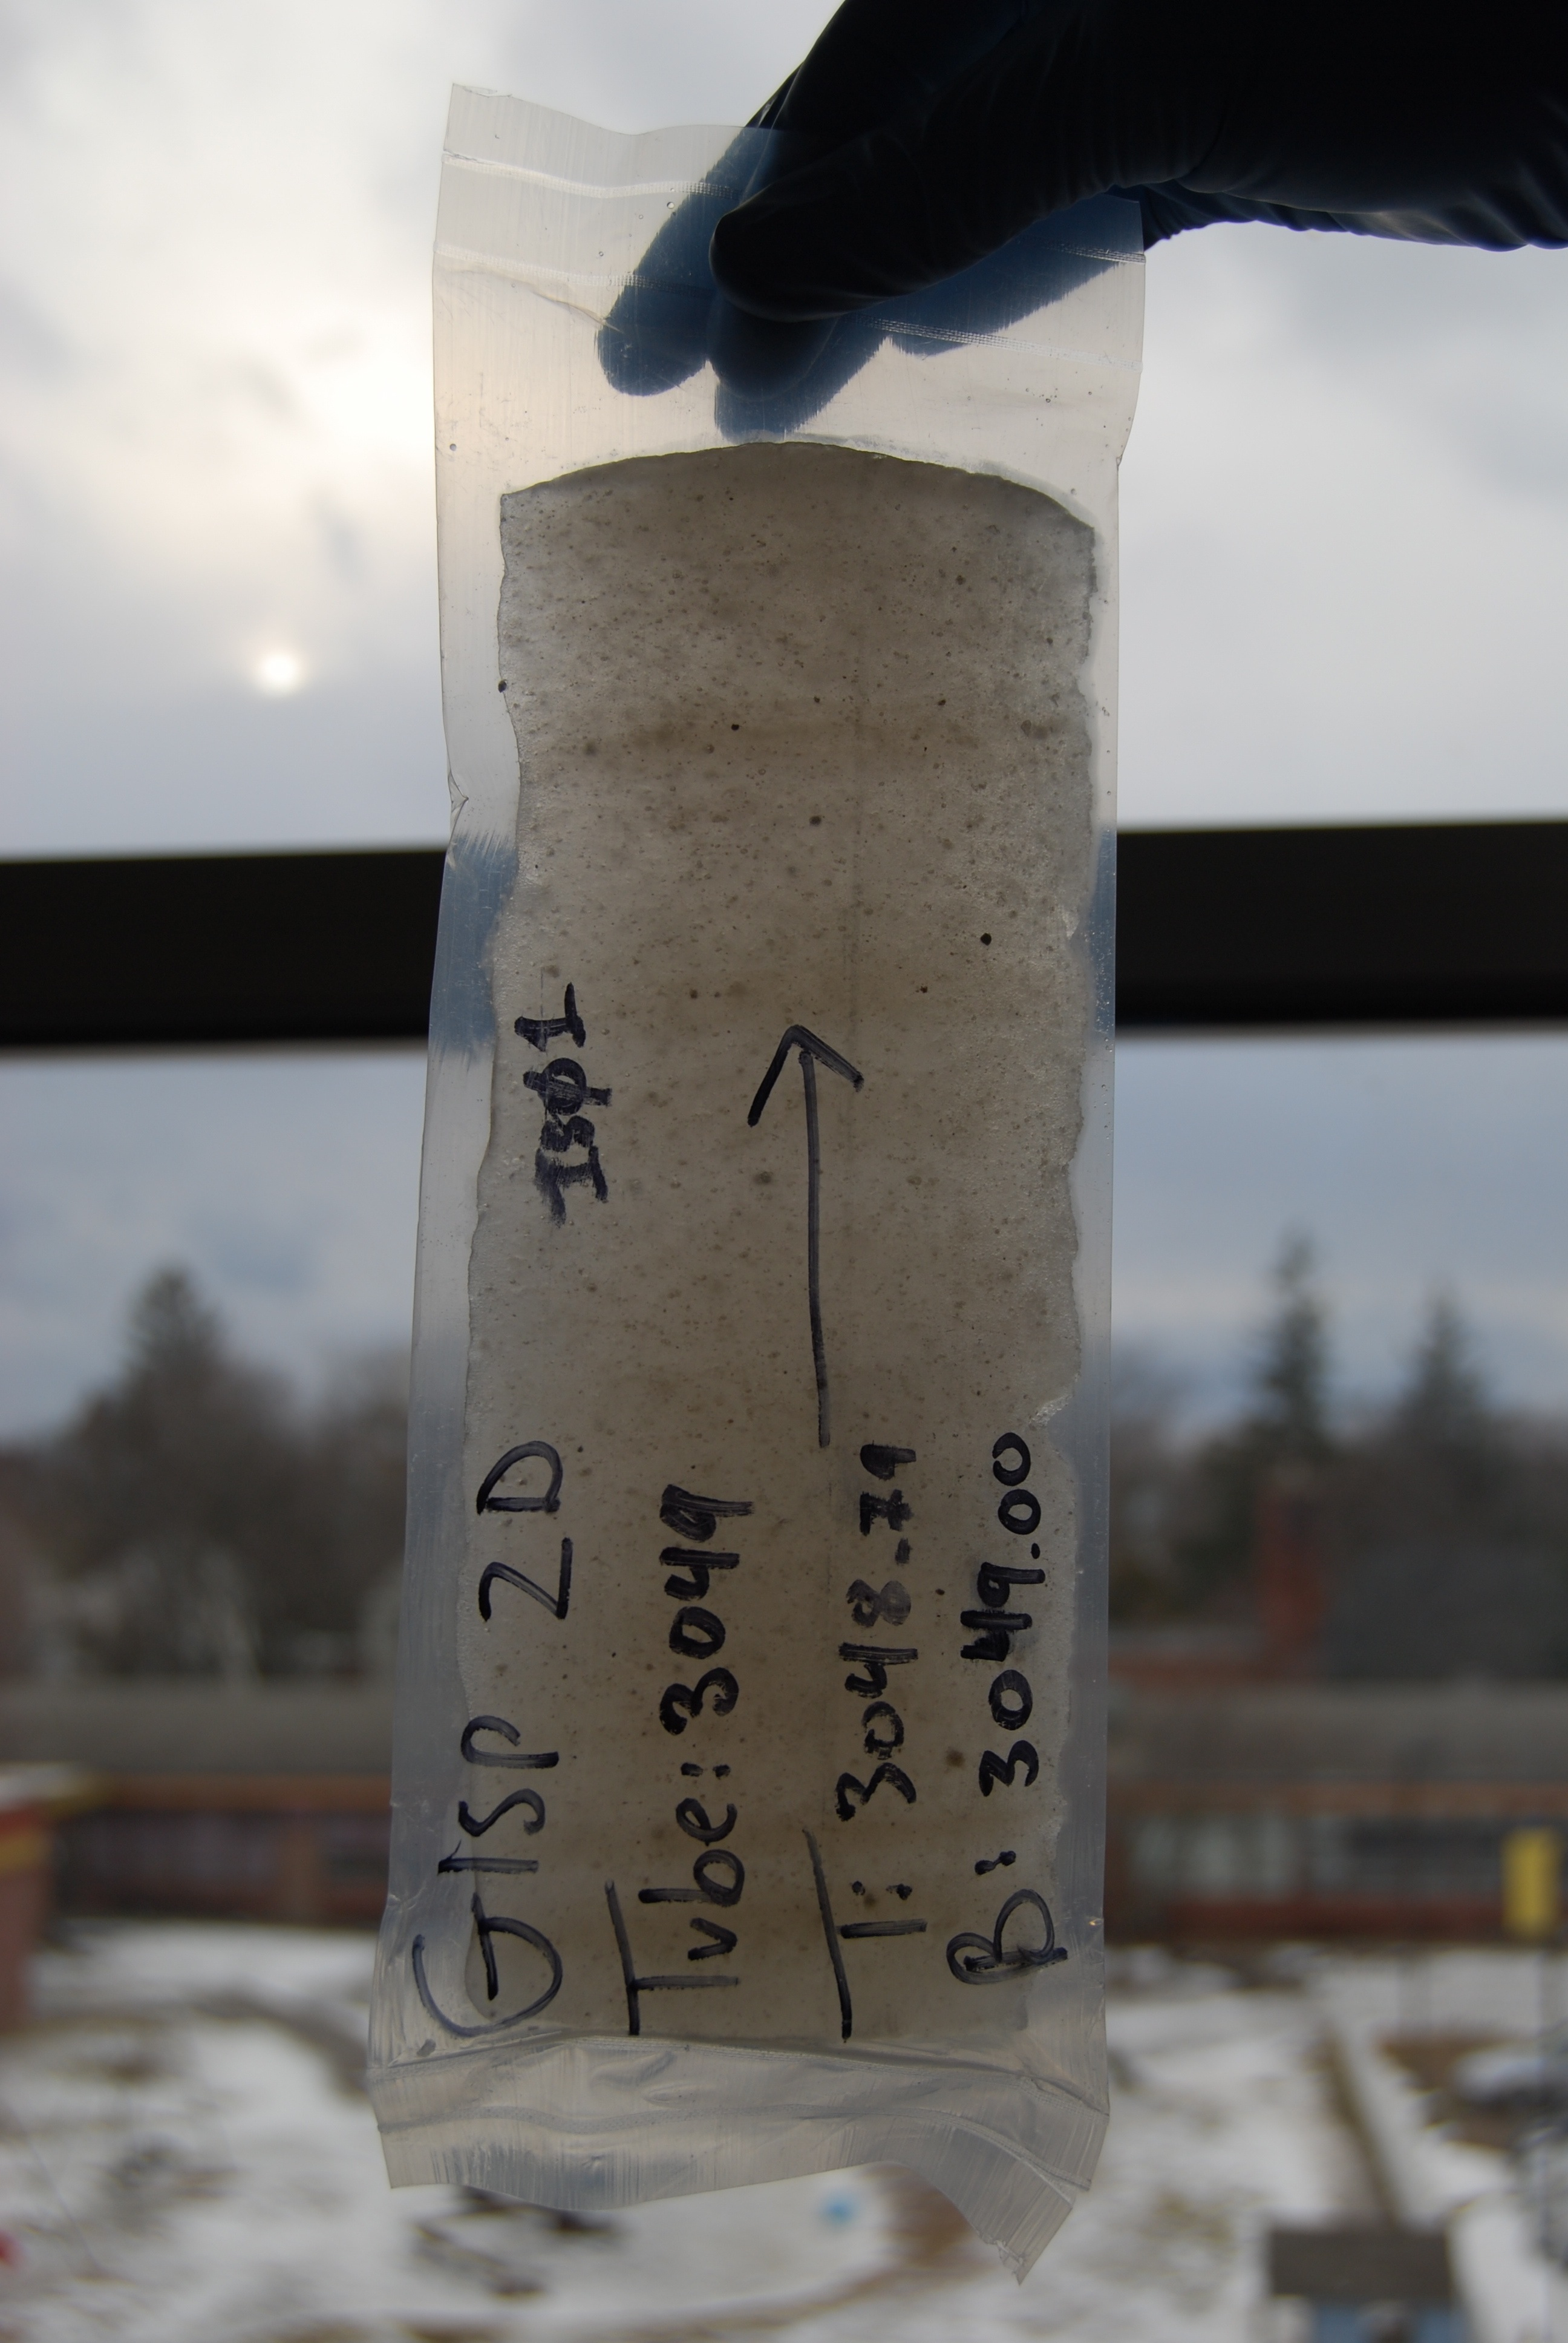 Photograph of an ice core sample from the Greenland Ice Sheet